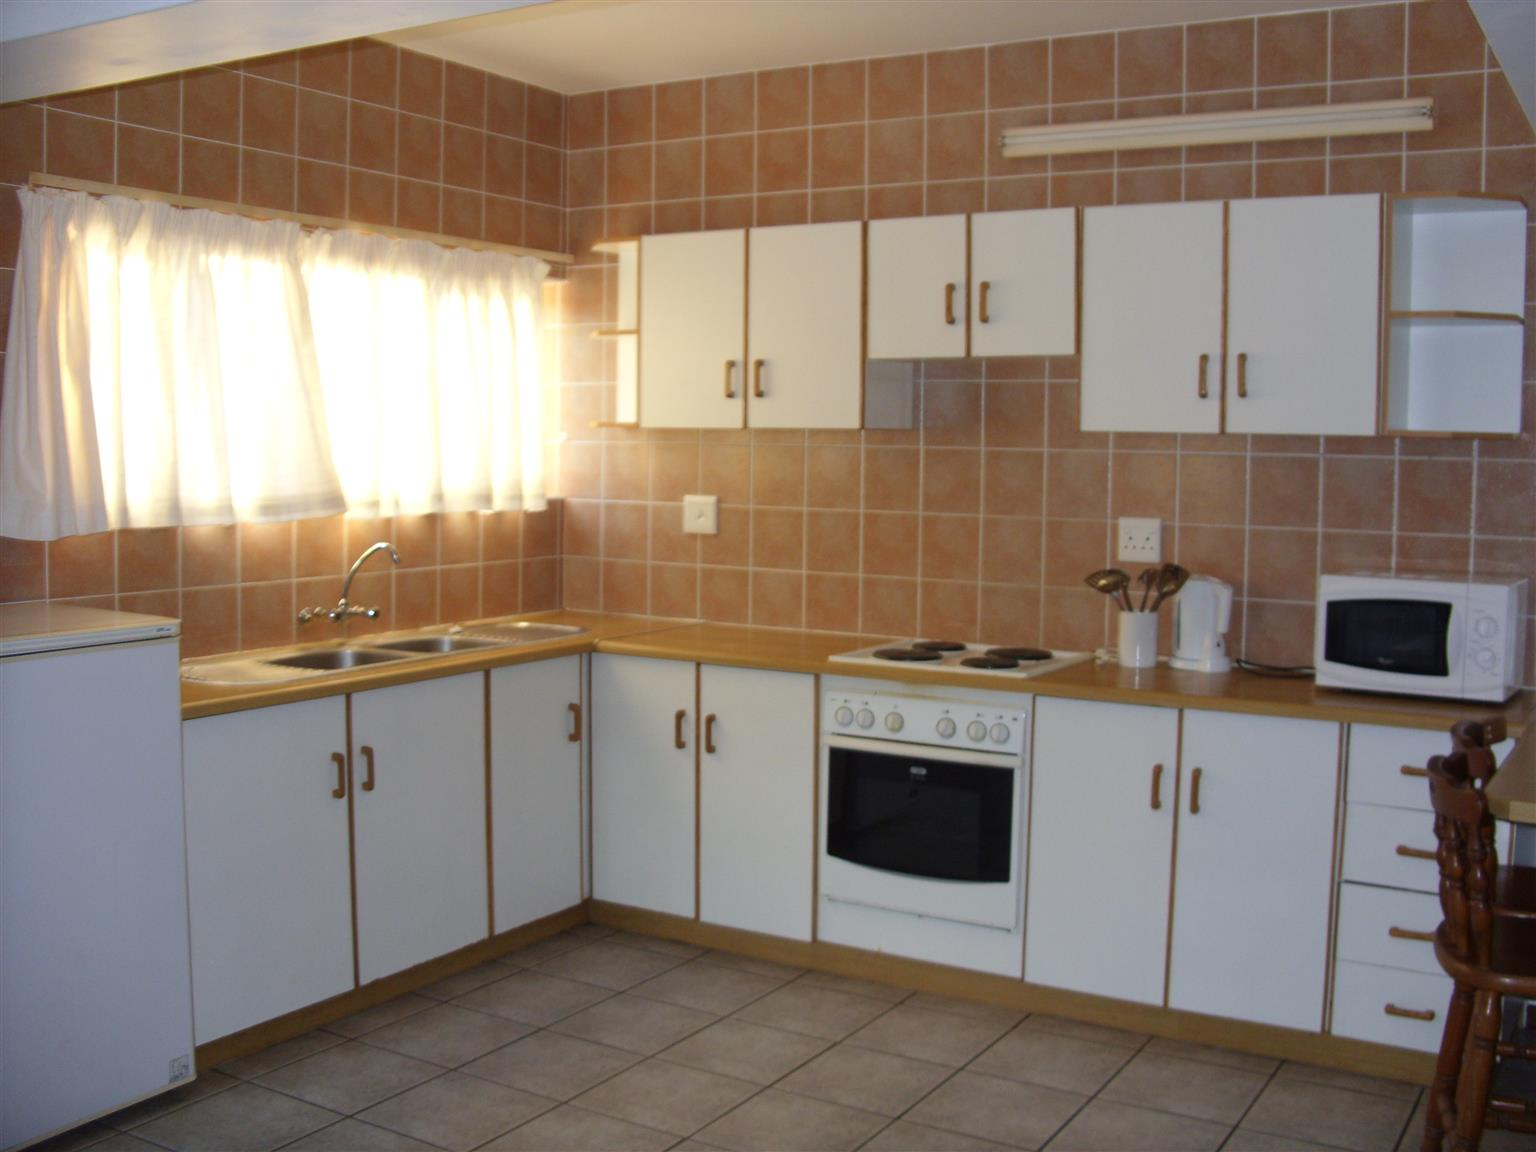 UVONGO FURNISHED TWO BEDROOM FLAT ST MICHAELS-ON-SEA EXC E/W SHELLY BEACH IMMEDIATE OCCUPATION